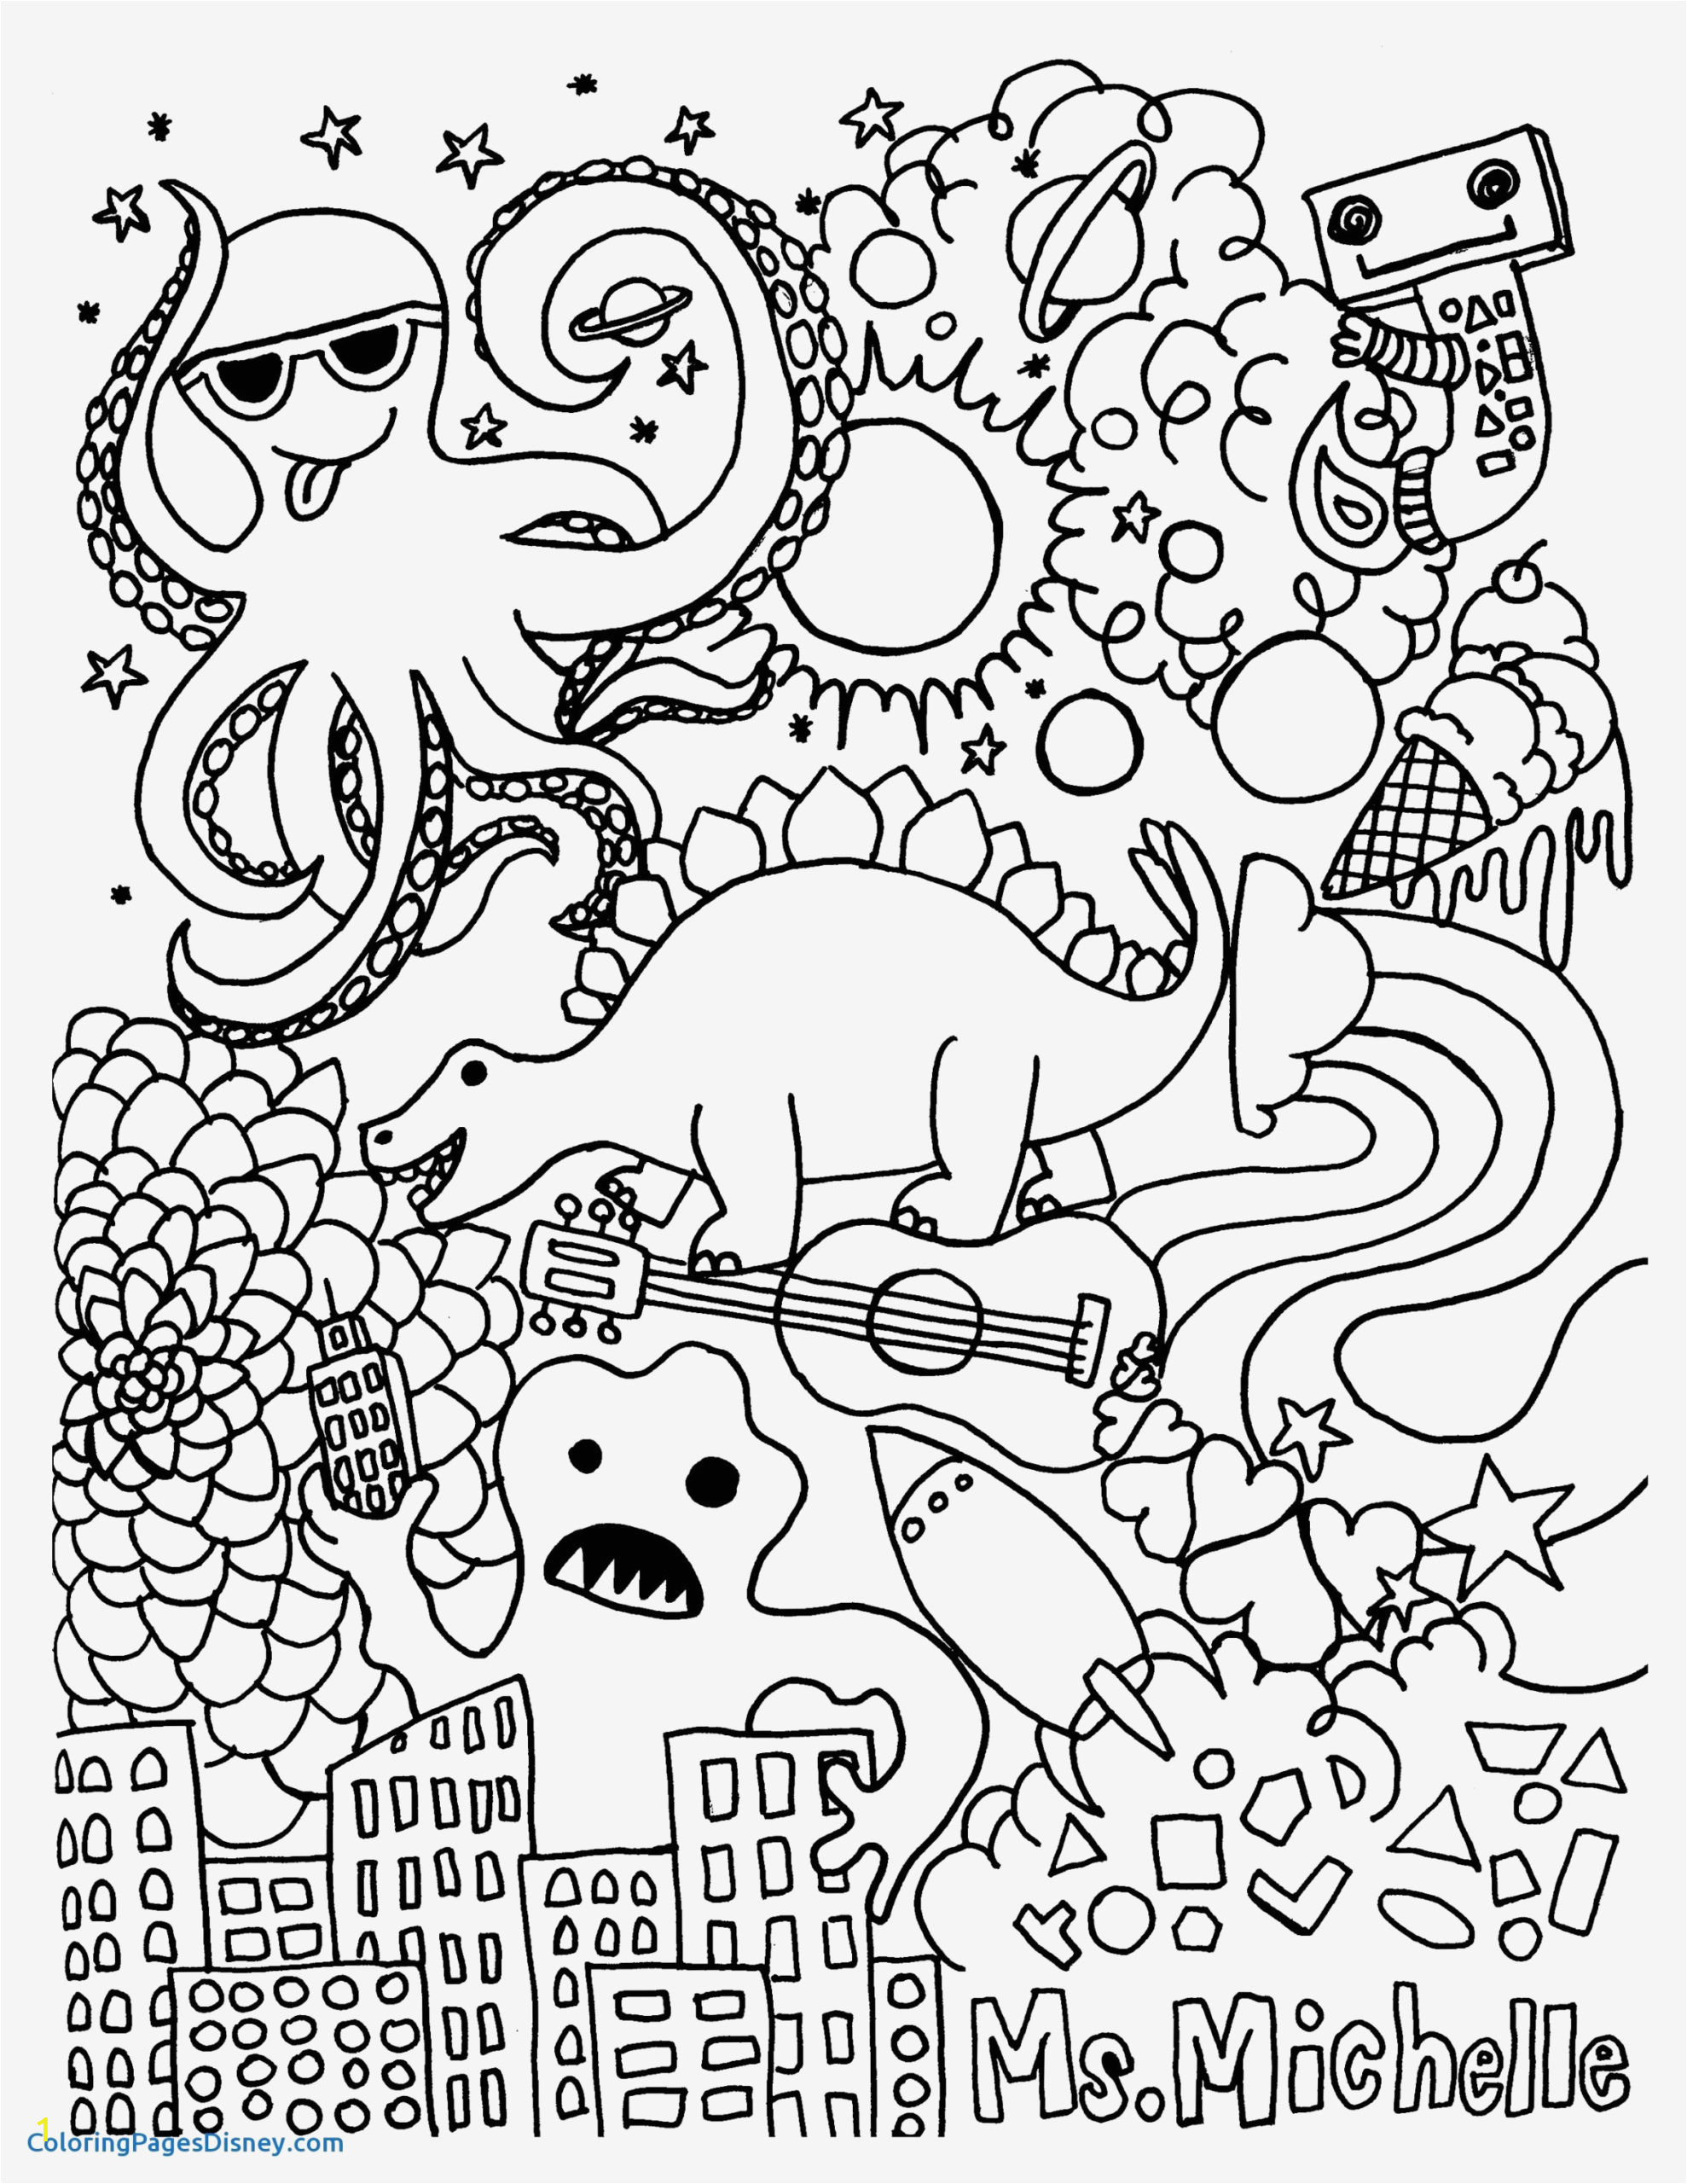 Thundercats Printable Coloring Pages top 32 Exceptional Starbucks Coloring Pages Awesome Unique